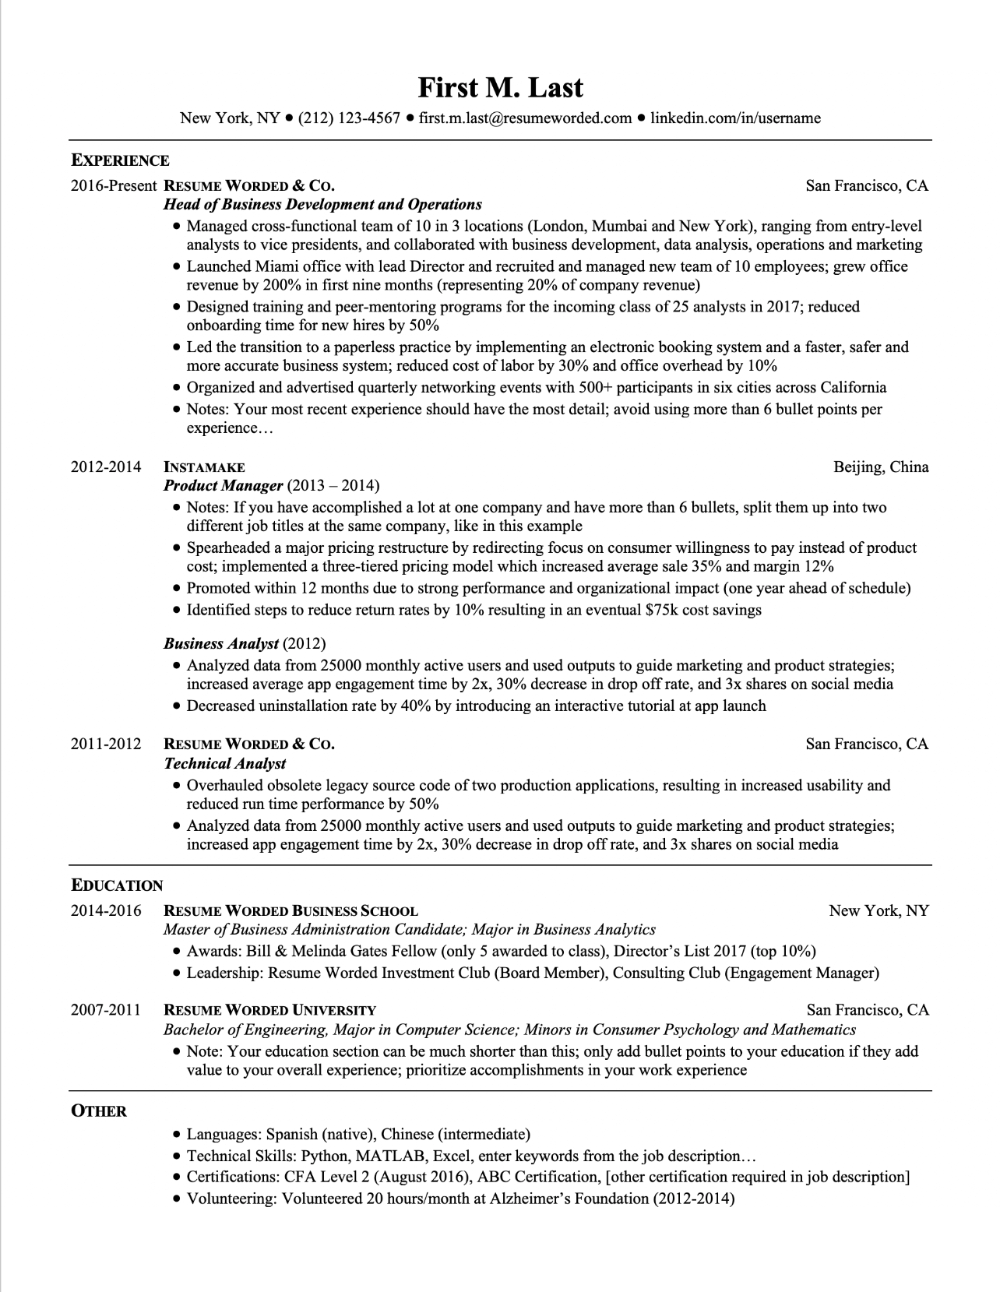 Professional Ats Resume Templates For Experienced Hires And College Students Or Grads For Free Updated For 2020 Resume Template Resume Words Resume Templates